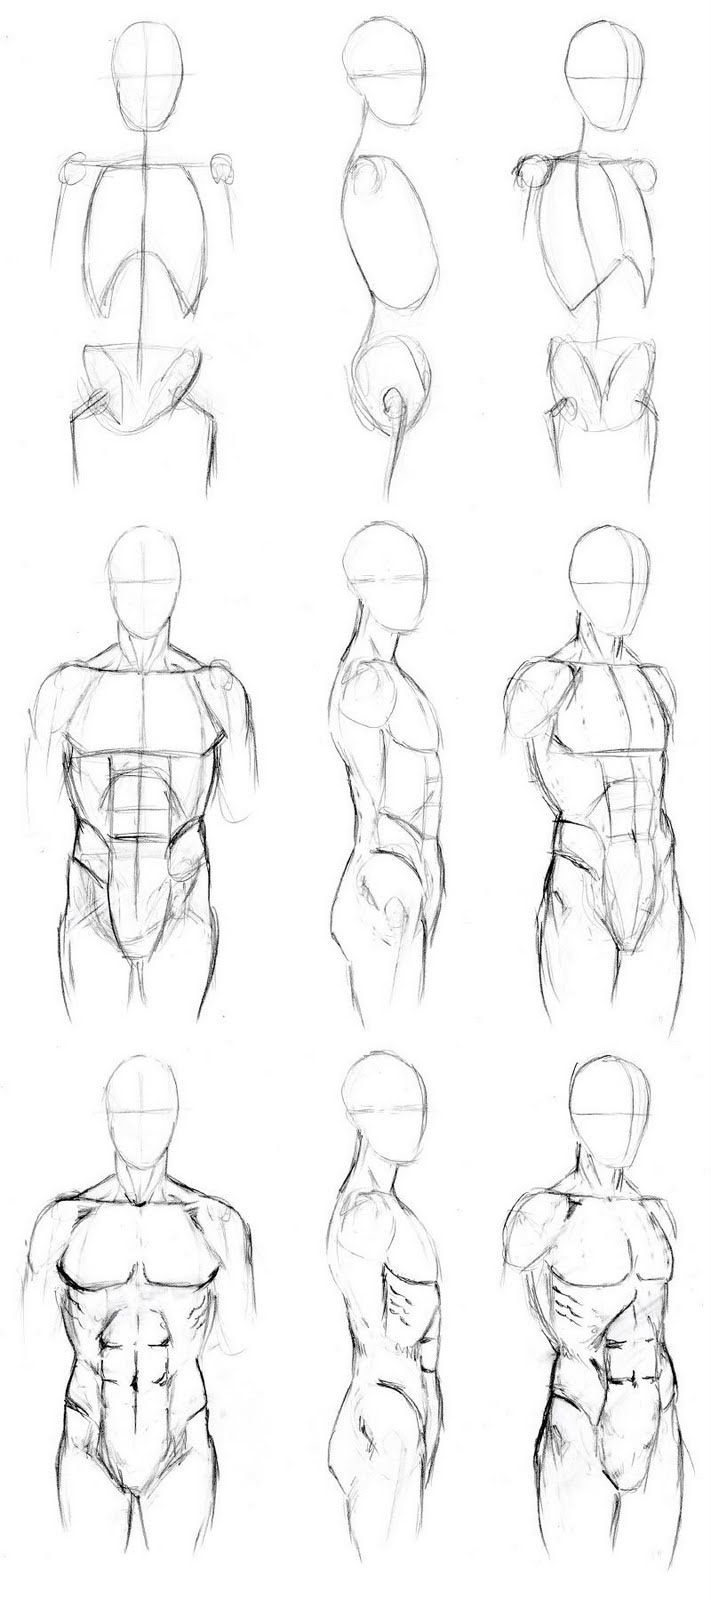 Learn to Draw: Human Body | sketch men | Pinterest | Human body ...